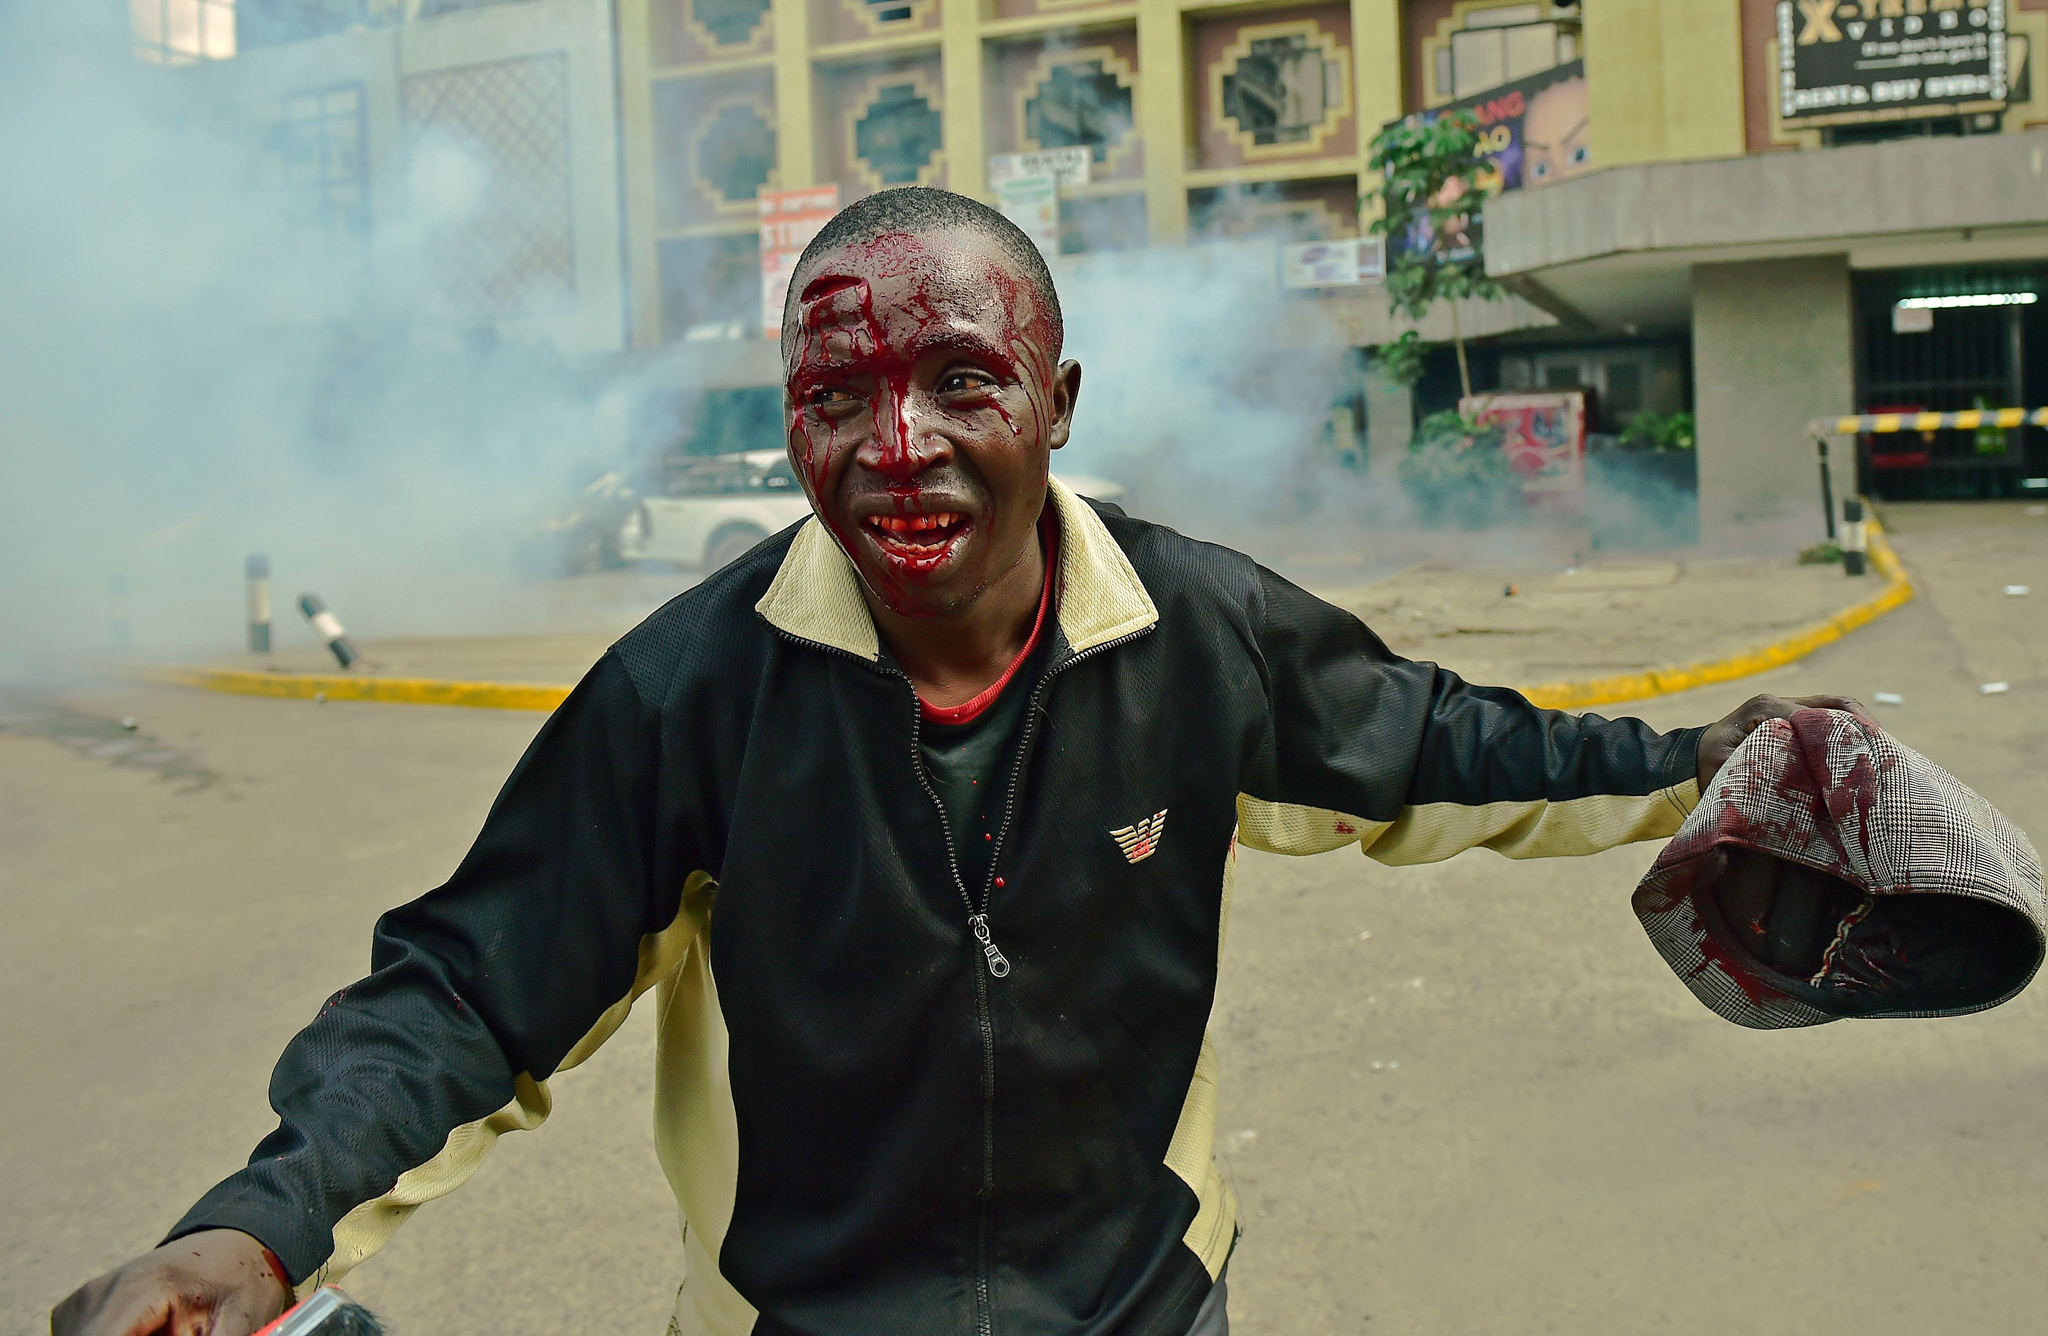 A man injured following clashes with Kenyan riot police officers, runs away from teargas, during a demonstration of Kenya's opposition supporters in Nairobi, on May 16, 2016.  Opposition protestors led by former Prime Minister Raila Odinga gathered outside the Indepedent Electoral and Boundaries Comission building to demand the dismissal of IEBC commissioners, after alleged bias towards the ruling Jubillee Alliance Party. / AFP PHOTO / CARL DE SOUZACARL DE SOUZA/AFP/Getty Images